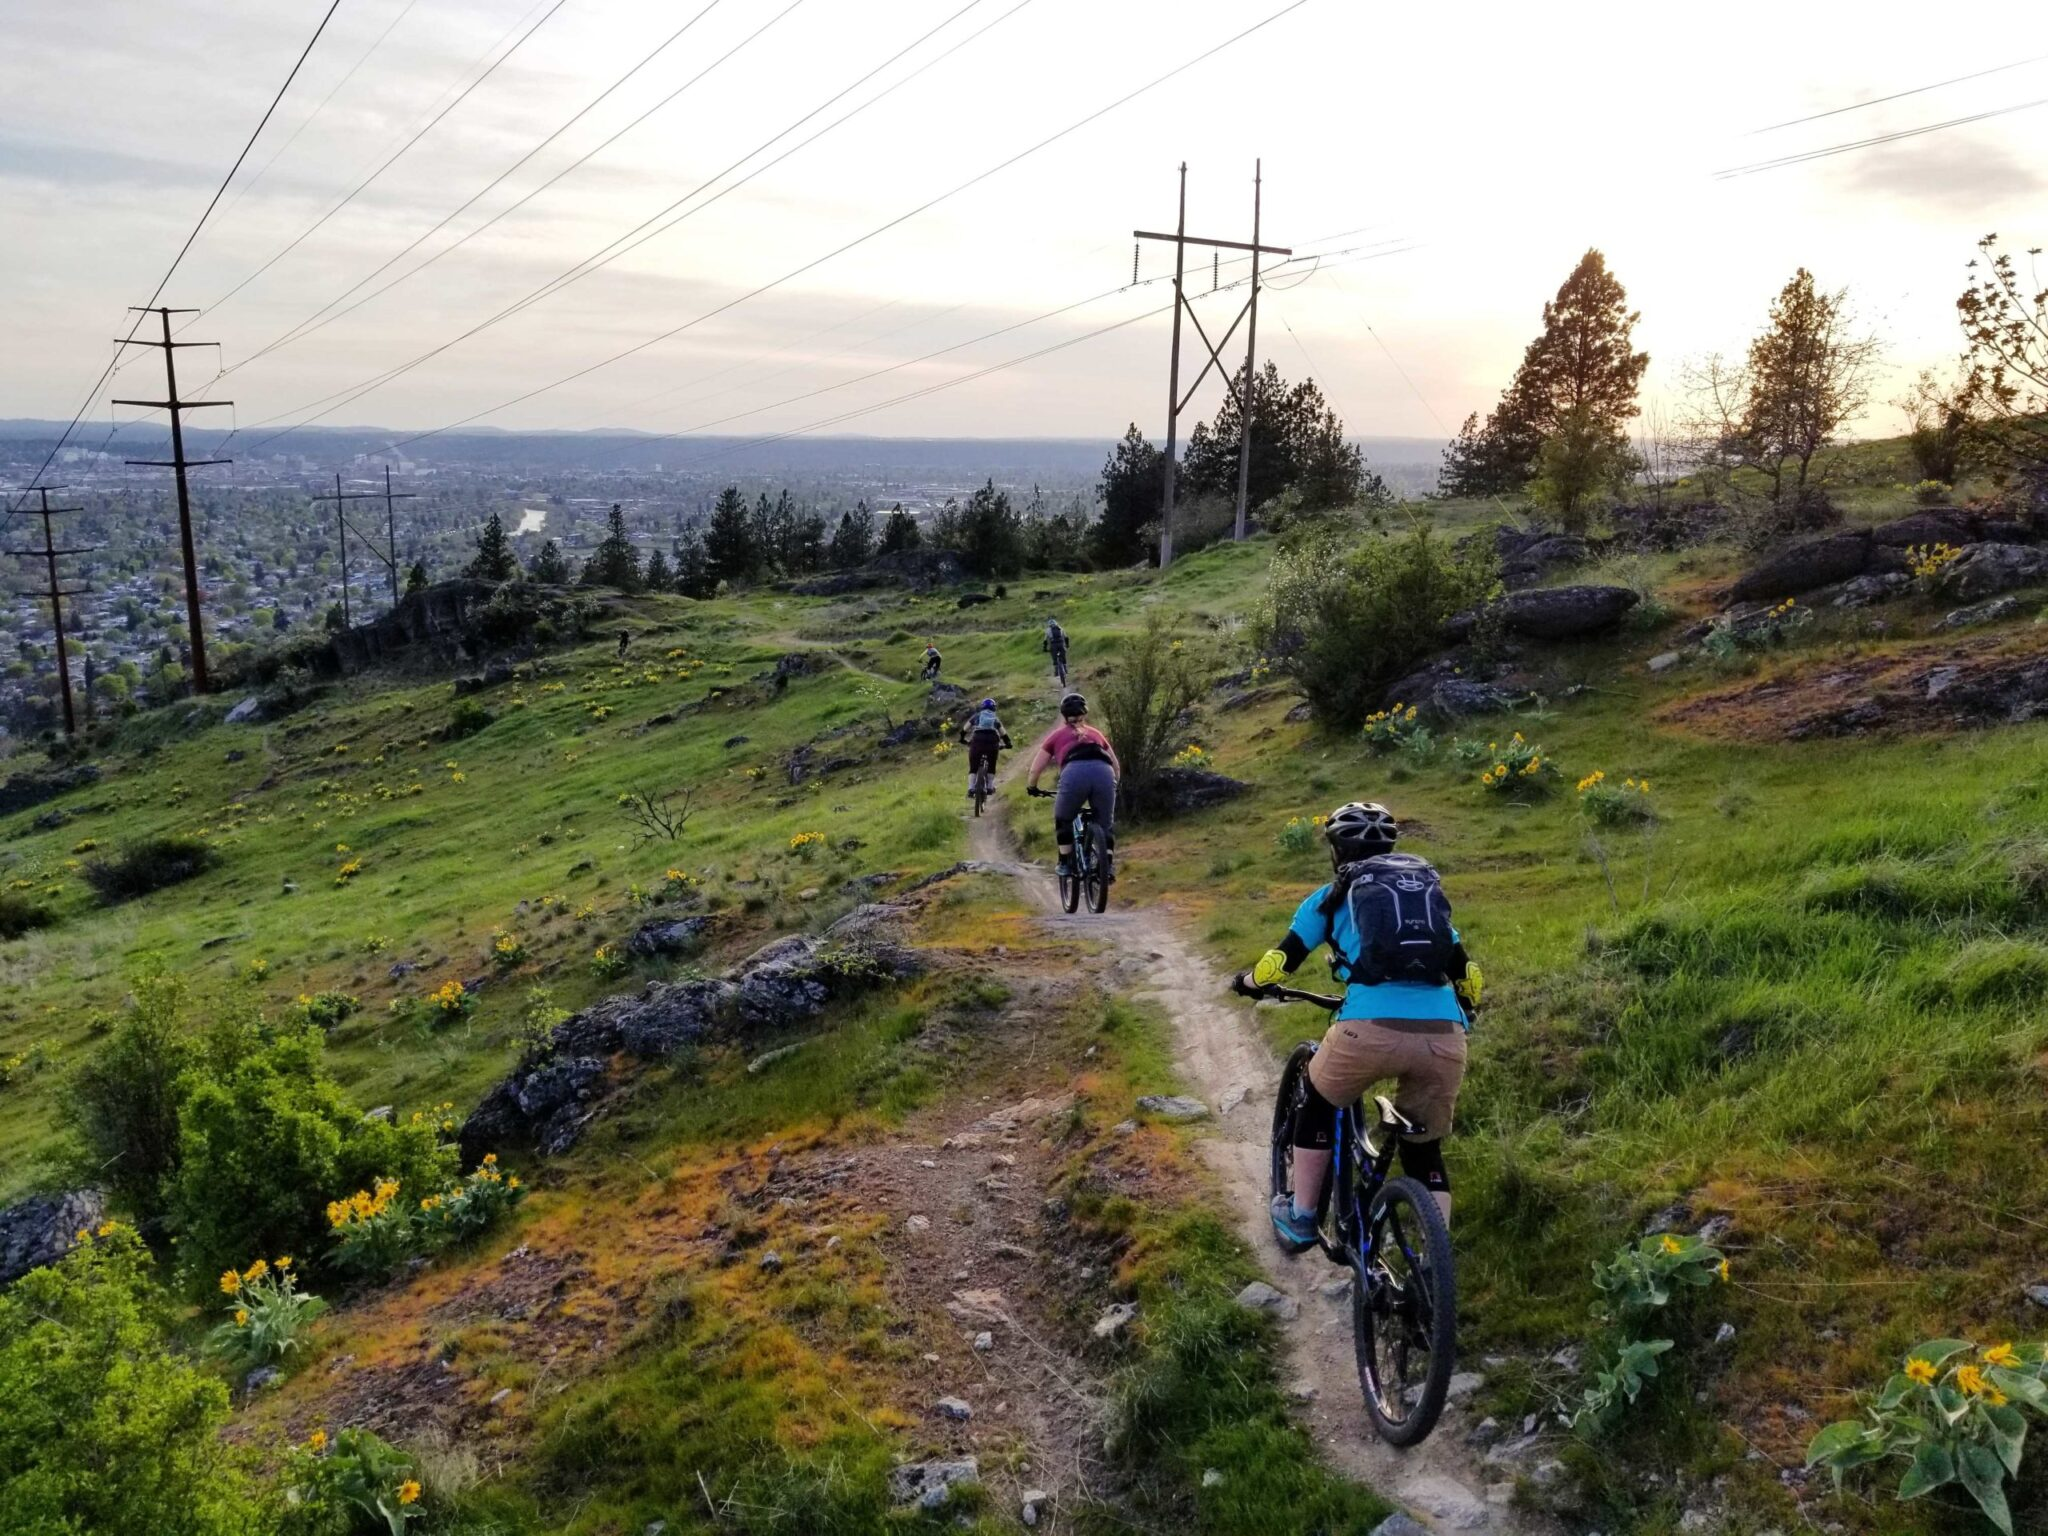 A group of people biking on a hill trail.